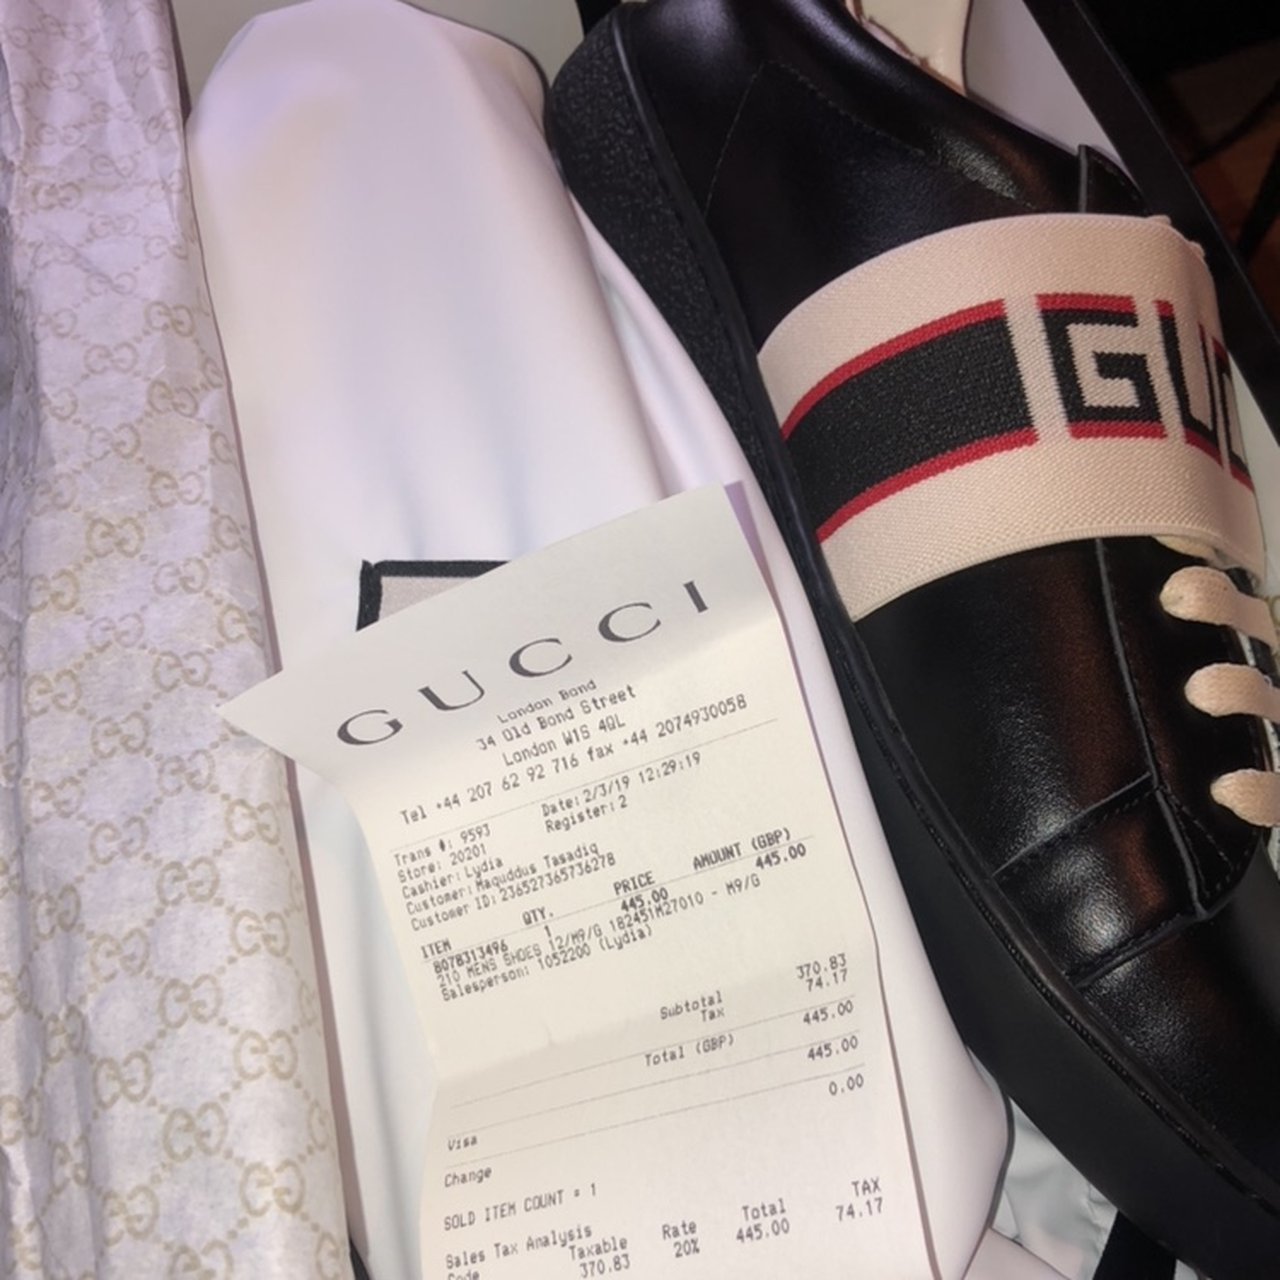 Gucci Sneakers comes with receipt, box